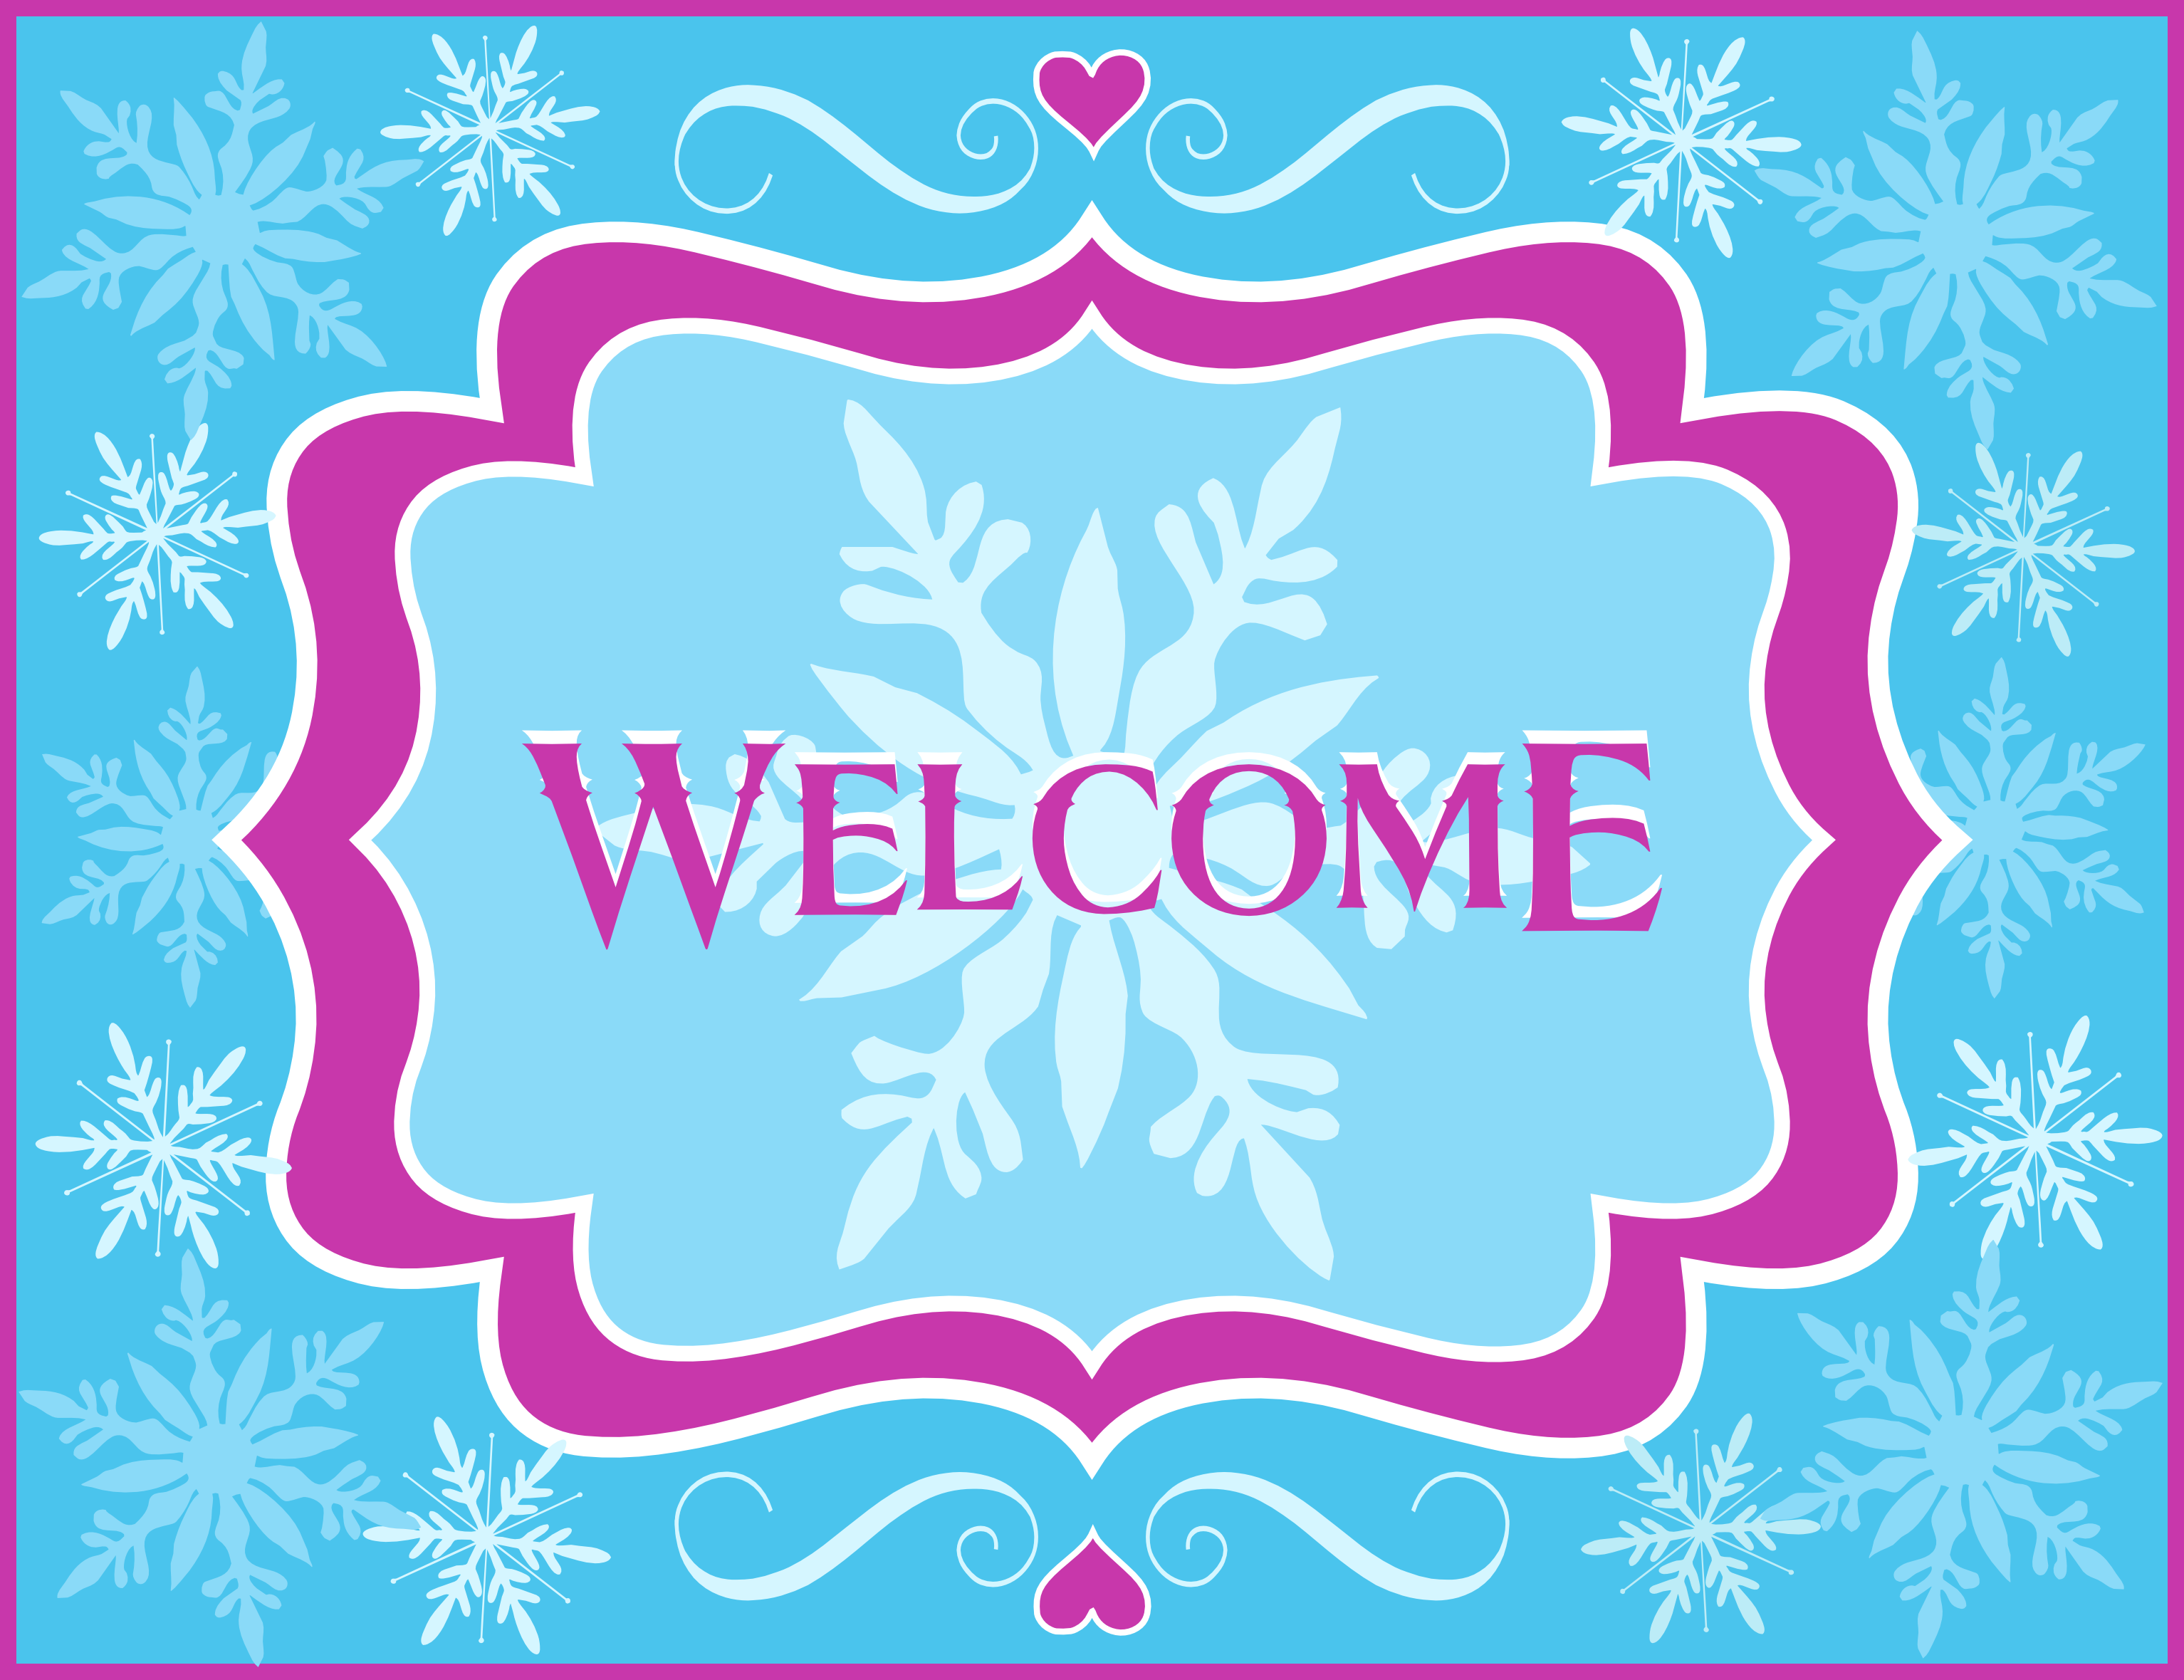 Free Frozen Party Printables from Printabelle   Party printables ...